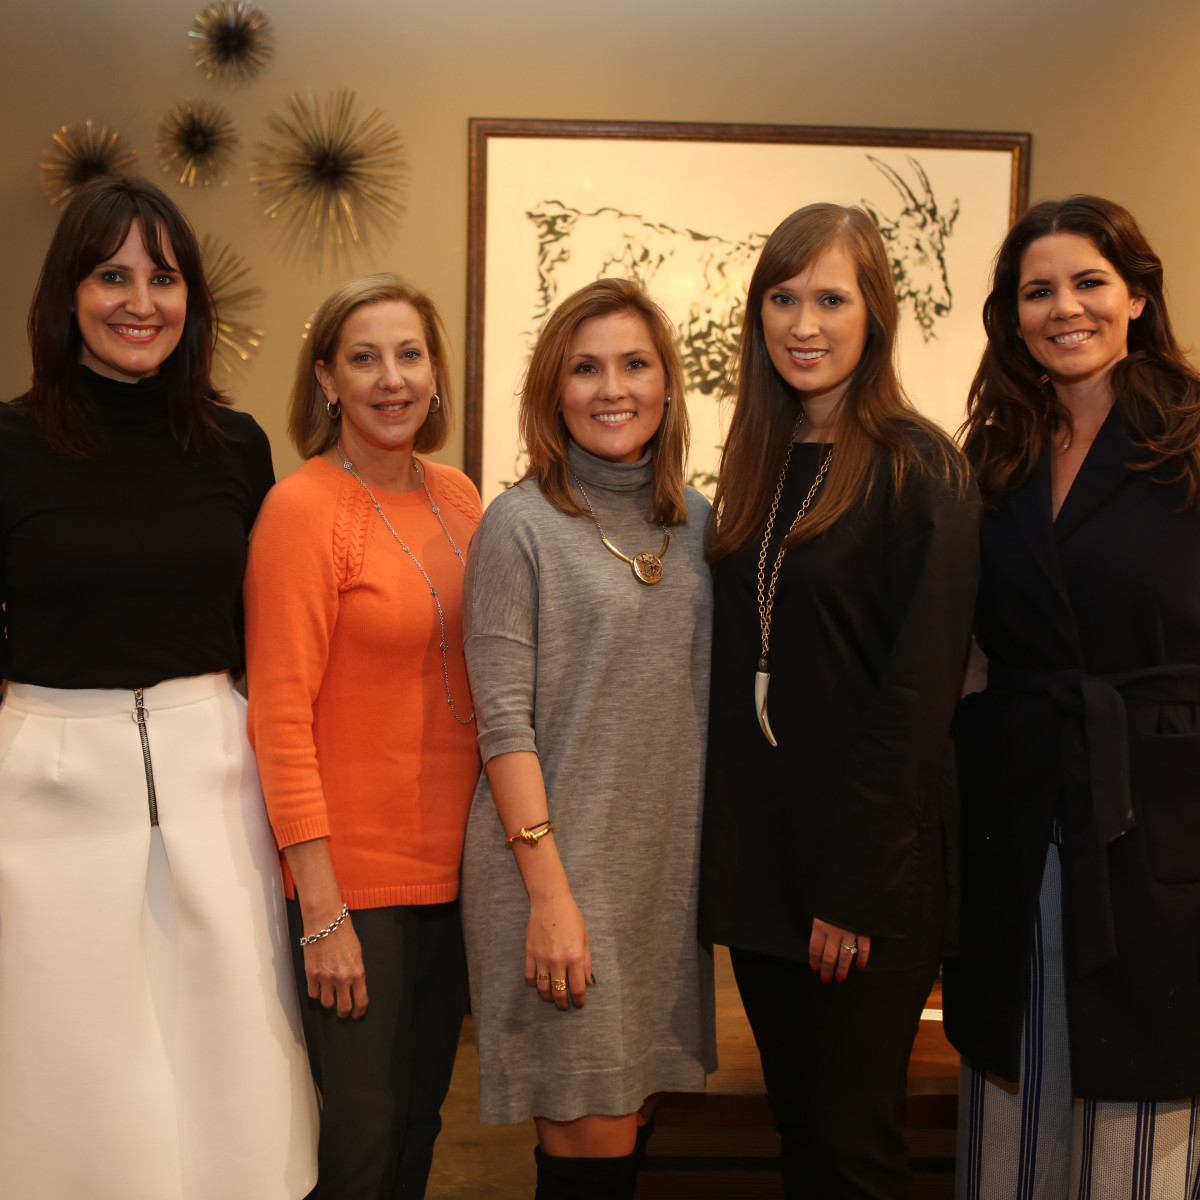 News, Shelby, Decorative Center Houston Fall Market, Nov. 2015, Kate Stukenberg, Martha Lurie, Katie Kime, Meg Lonergan and Paloma Contreras